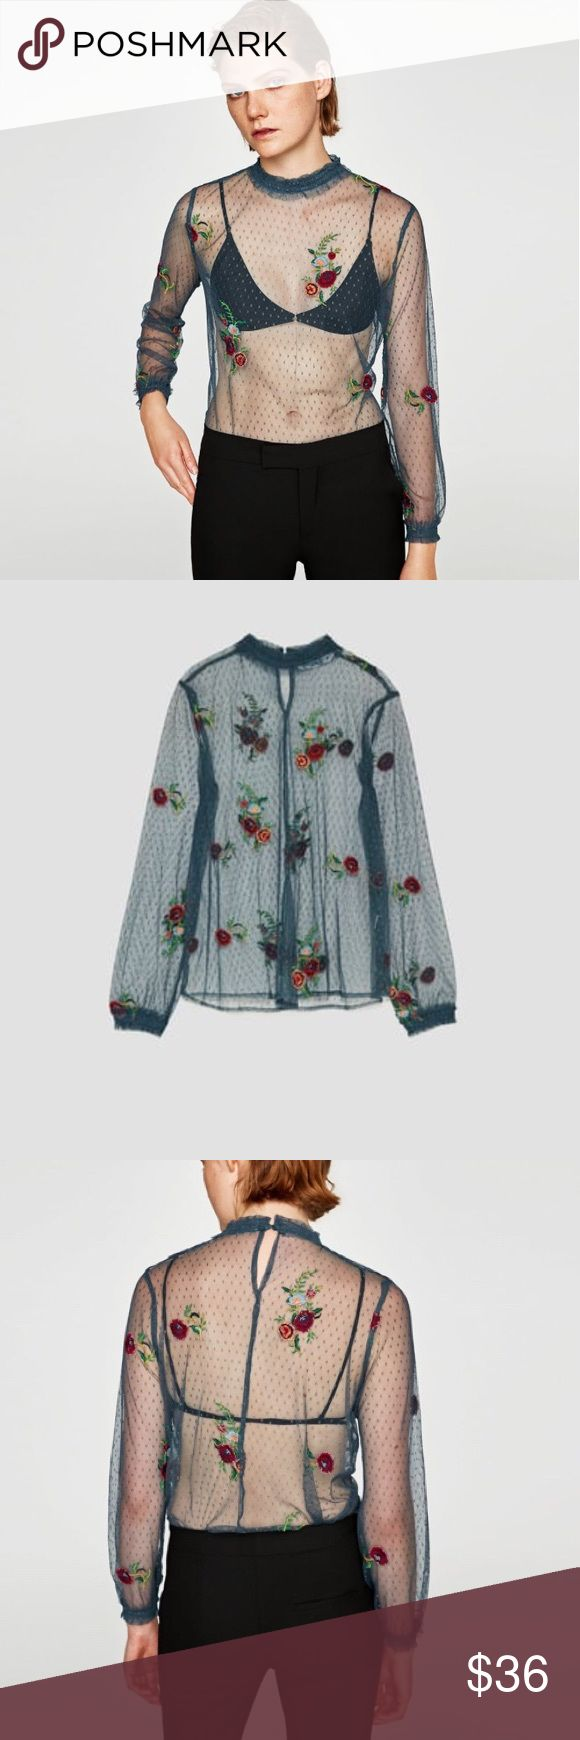 ZARA Embroidered Tulle Blouse ZARA Embroidered Tulle Blouse   • High collar  • Beautiful 3D embroidery  • Button fastener in back    📬  - Orders ship w/in 24- 48 hrs. Monday - Friday.  - Orders placed on weekends/holidays ship next business day.   Bundle 3 or more items for Private Offer Discount 😉 Zara Tops Blouses